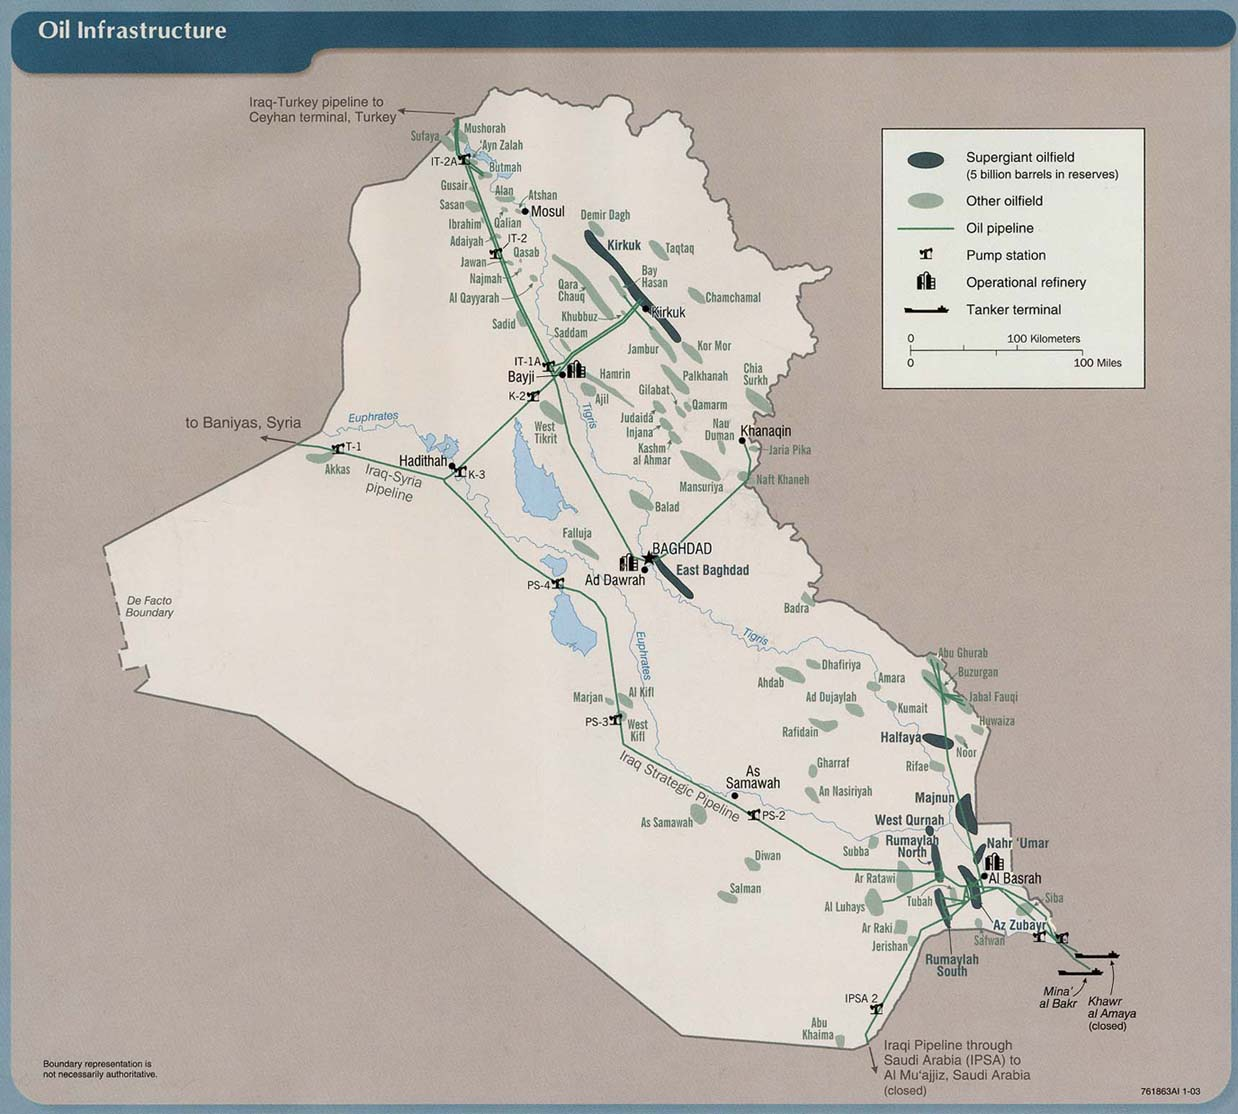 Free Oil and Gas Reserves, Exploration, Production Maps